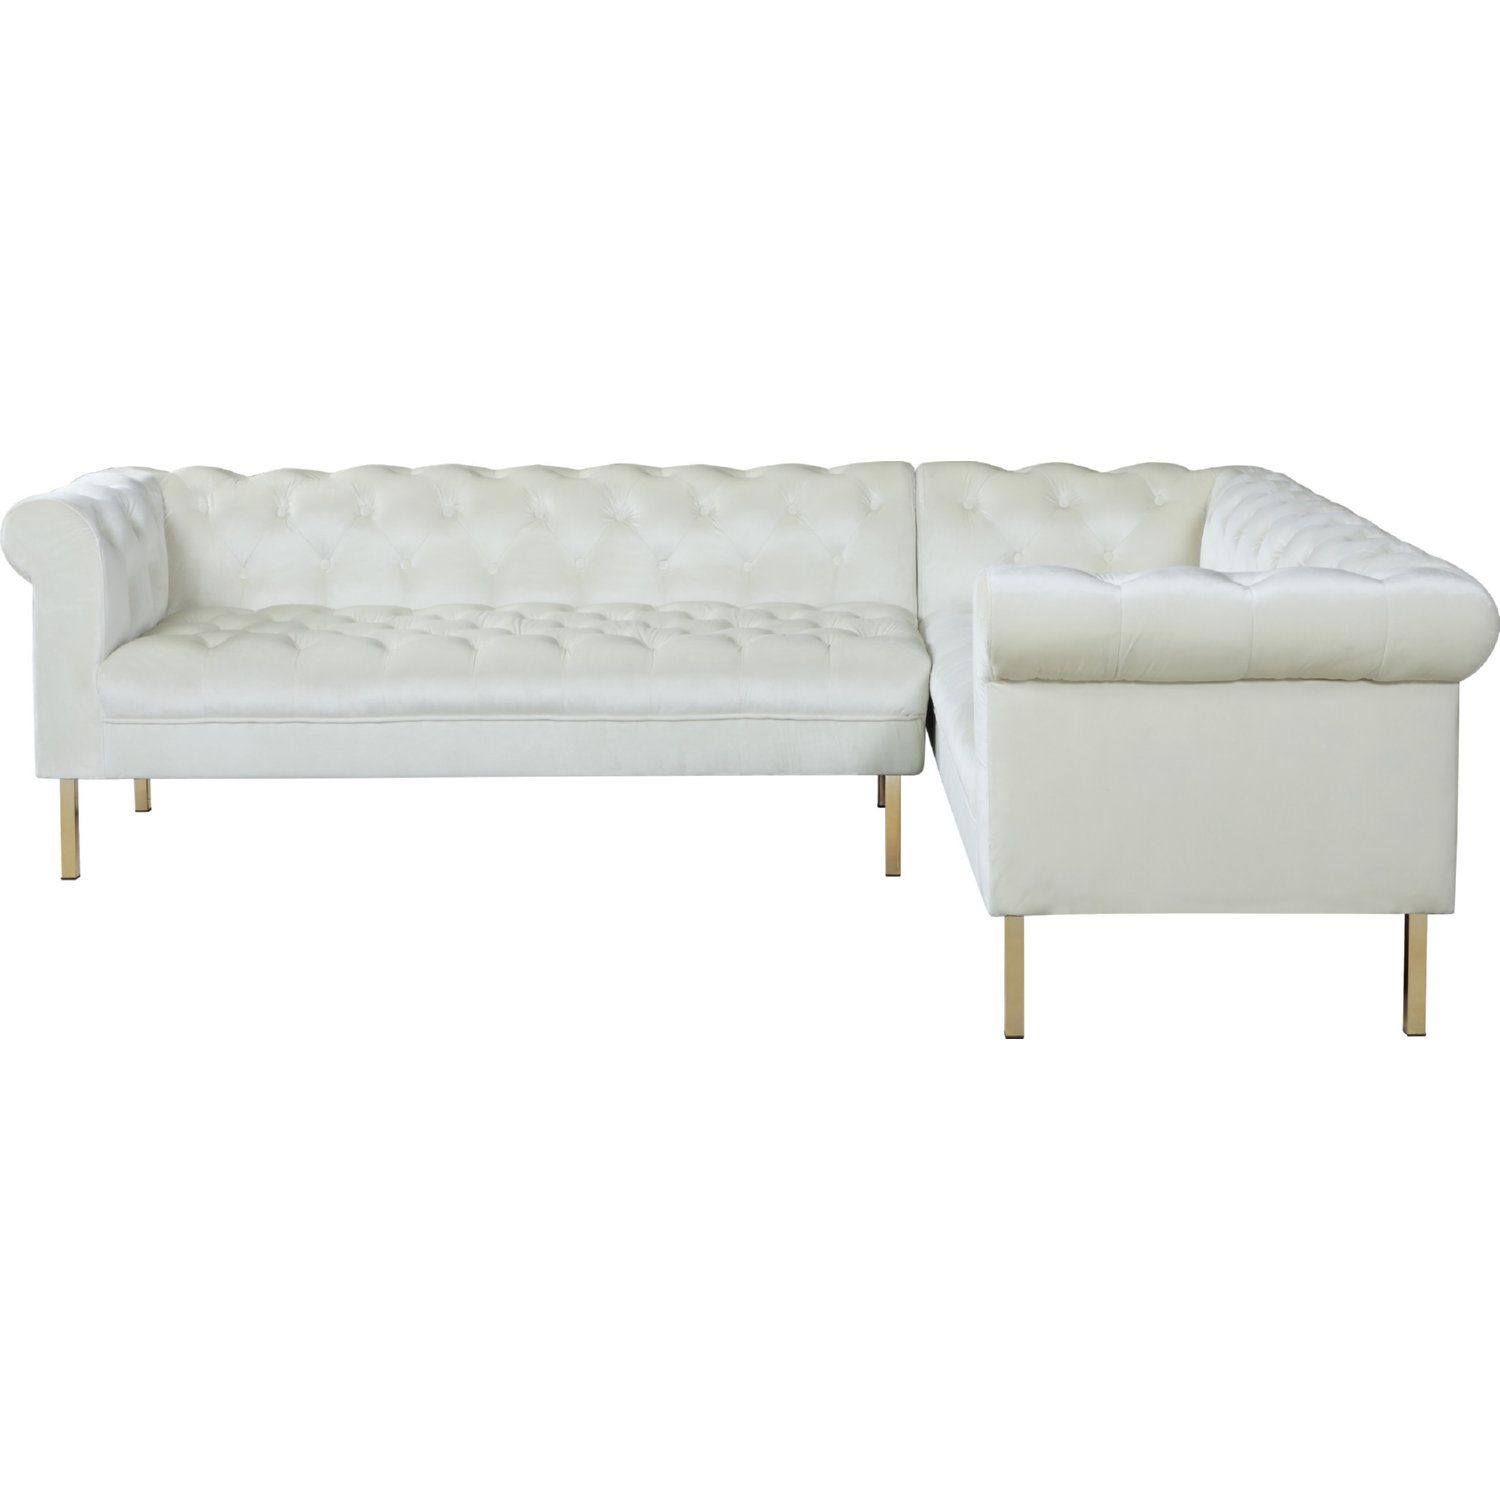 Chic Iconic Giovanni Right Sectional Sofa Tufted Beige Velvet Gold Legs Sectional Sofa Sofa Bench Cushions